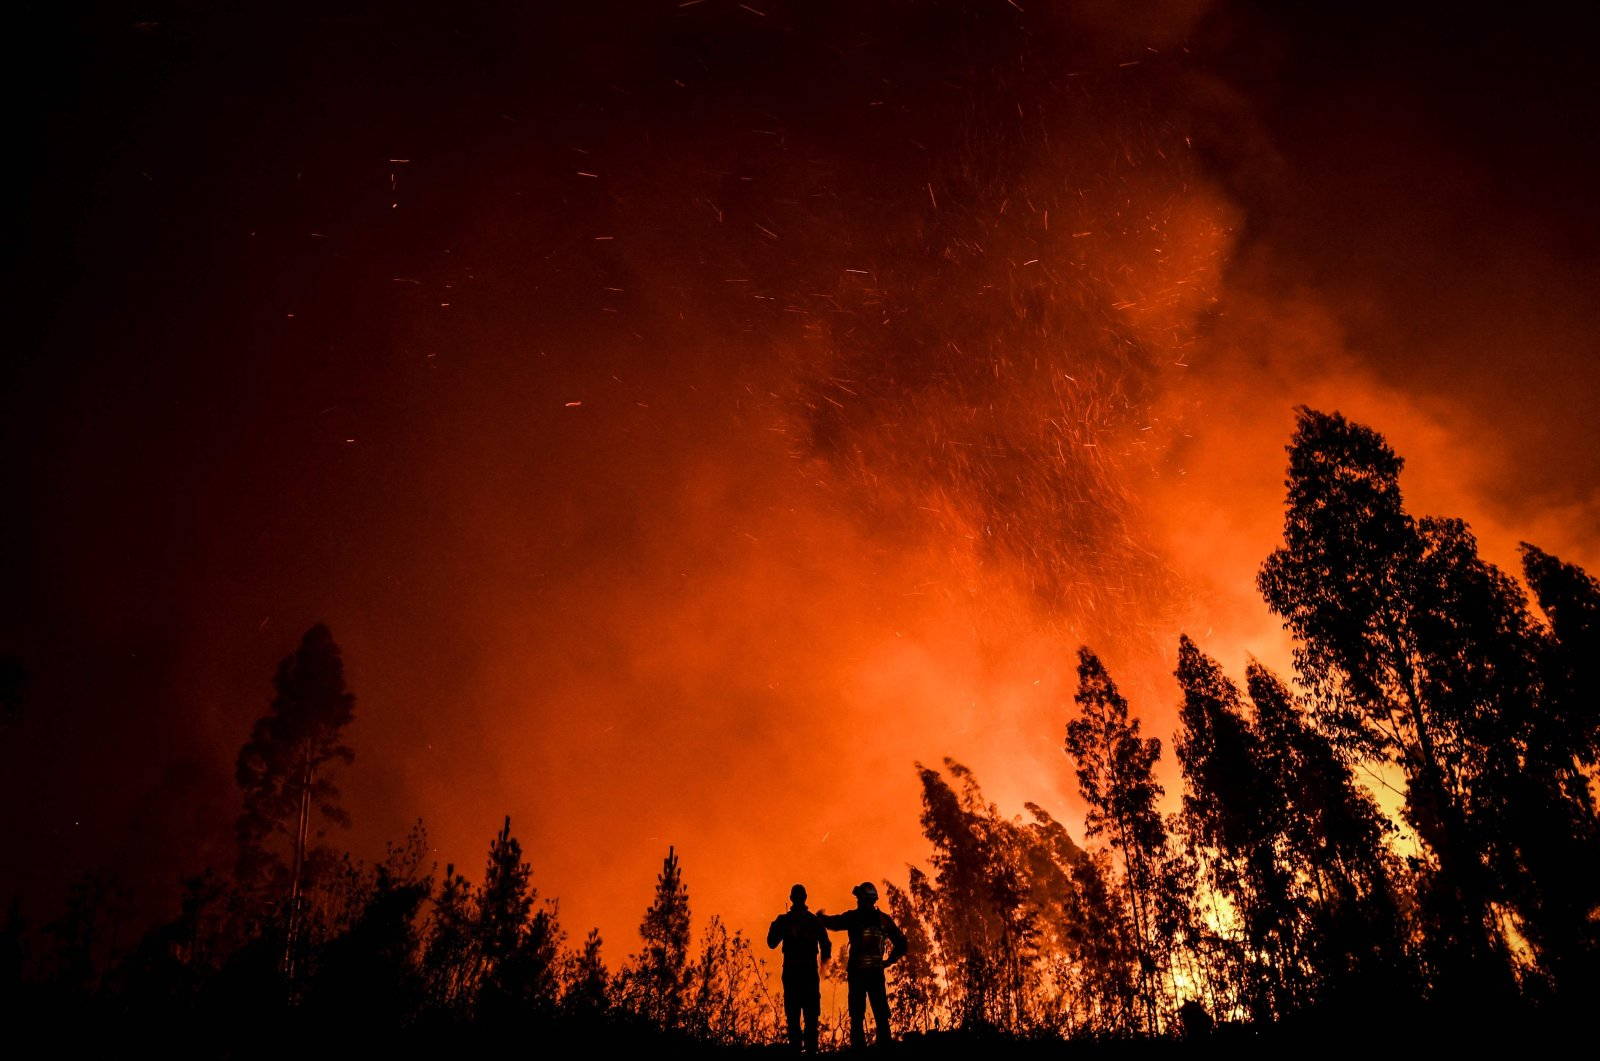 Firefighters monitor the progression of a wildfire at Amendoa in Macao, central Portugal, July 21, 2019. (AFP Photo)